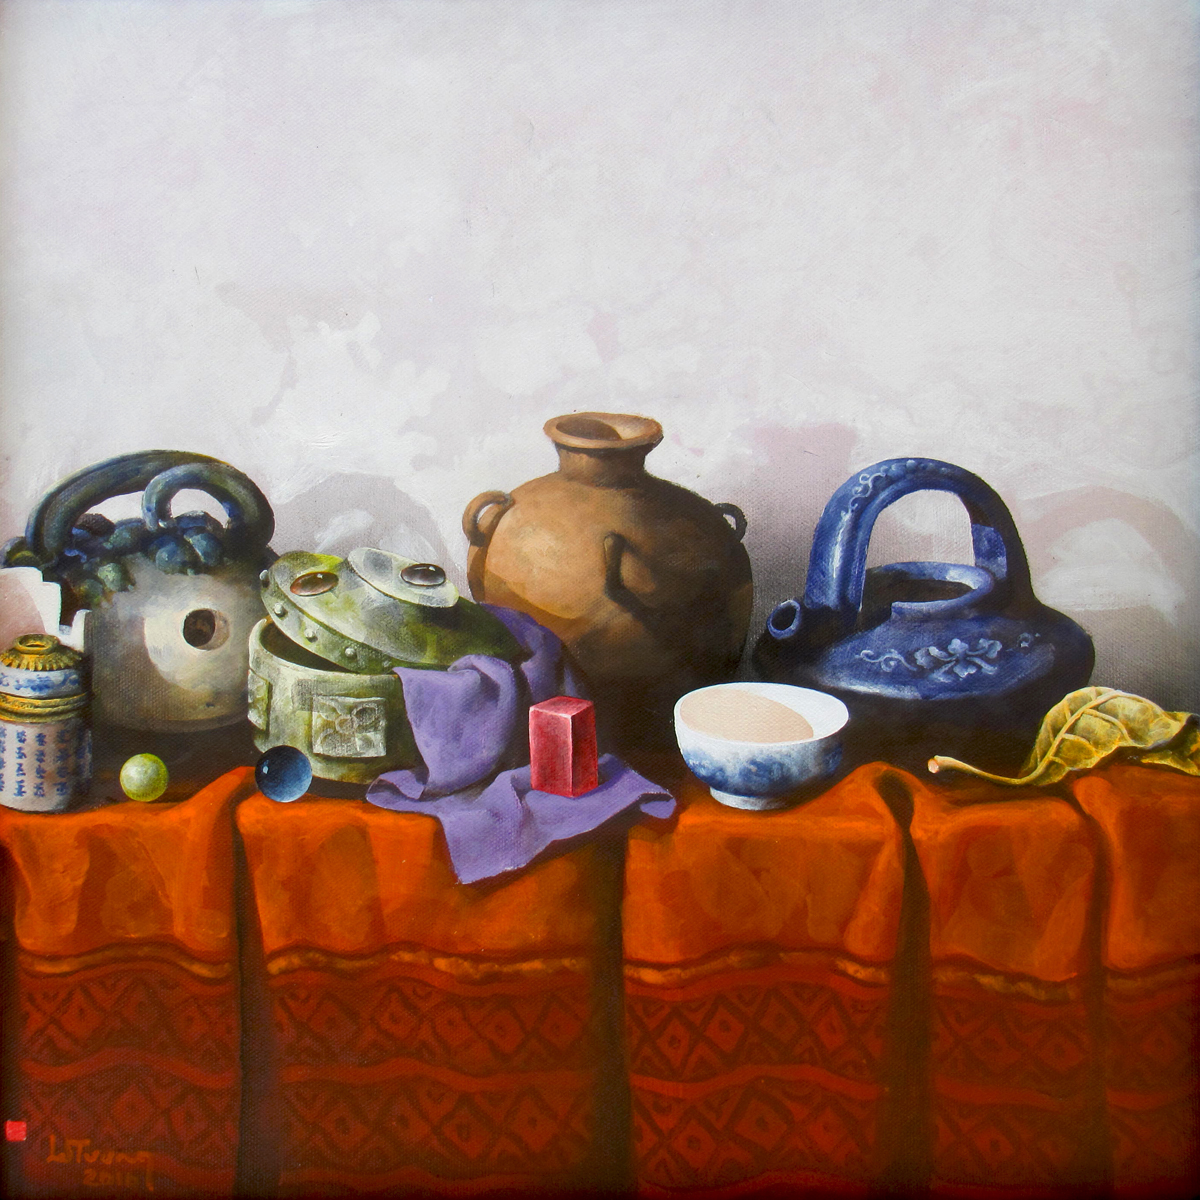 Vietnamese Art-Still Life with Antique Pots, an Oil Painting on Canvas